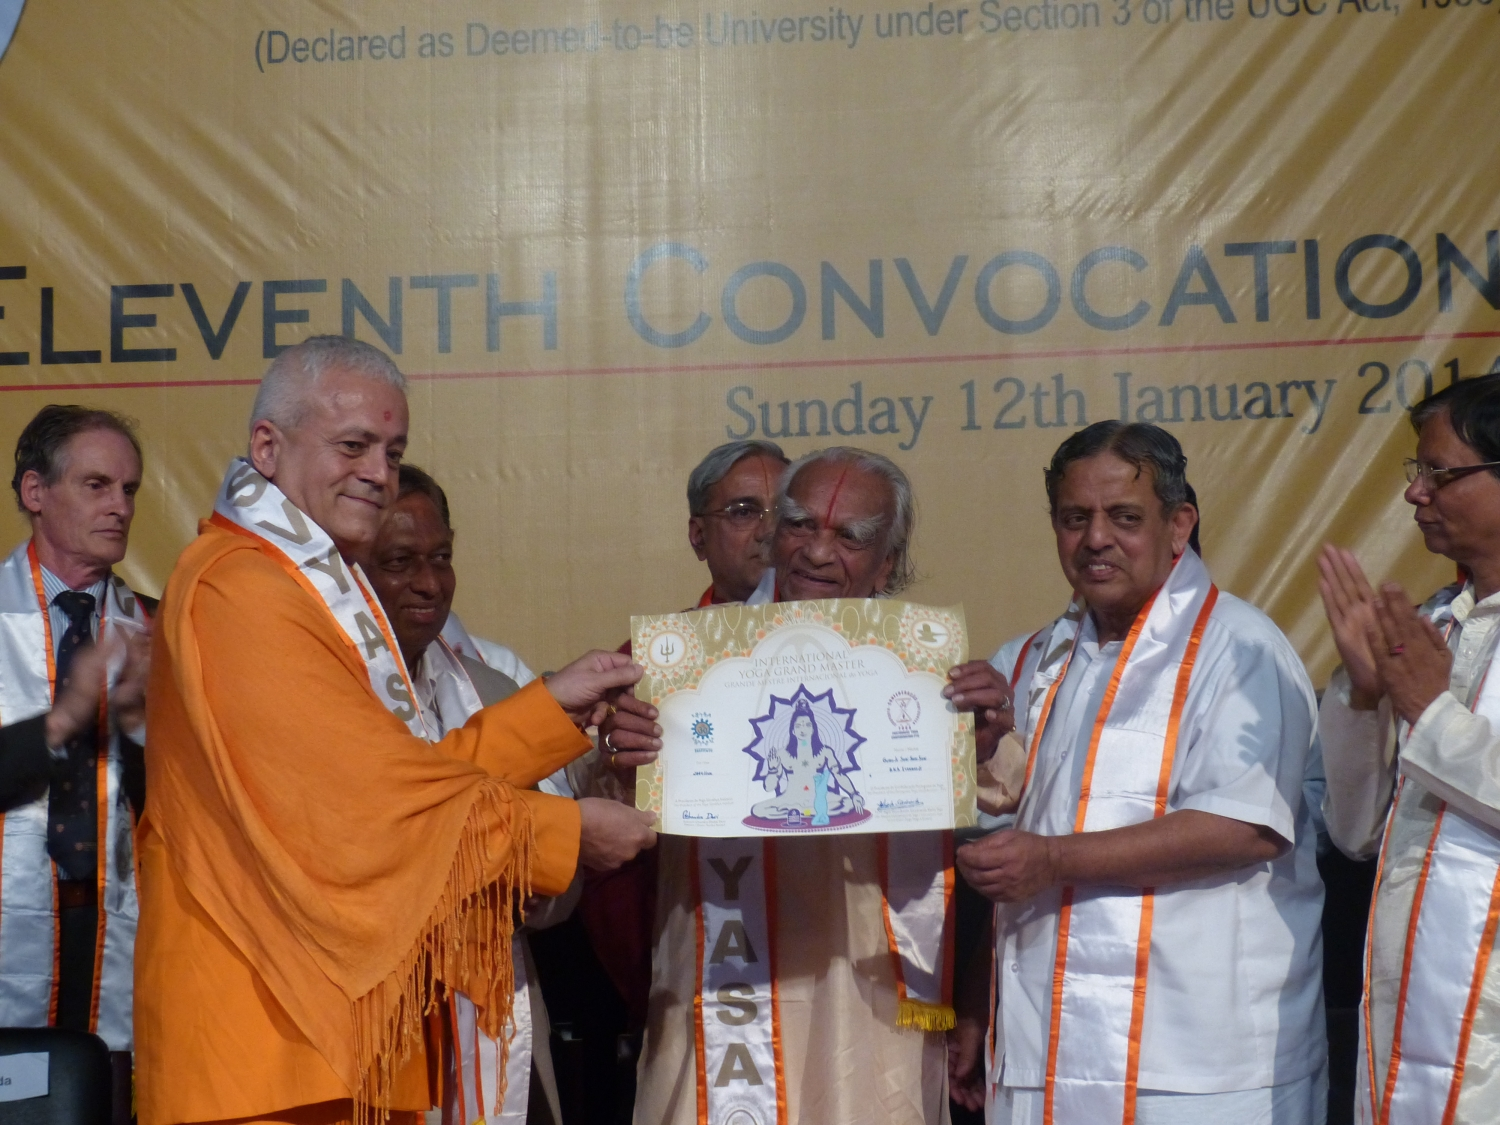 Attribution of the Title of Grand International Yoga Master and Keilasha award to Shrí Shrí Shrí Iyengar Jí Mahá Rája - 2014, January